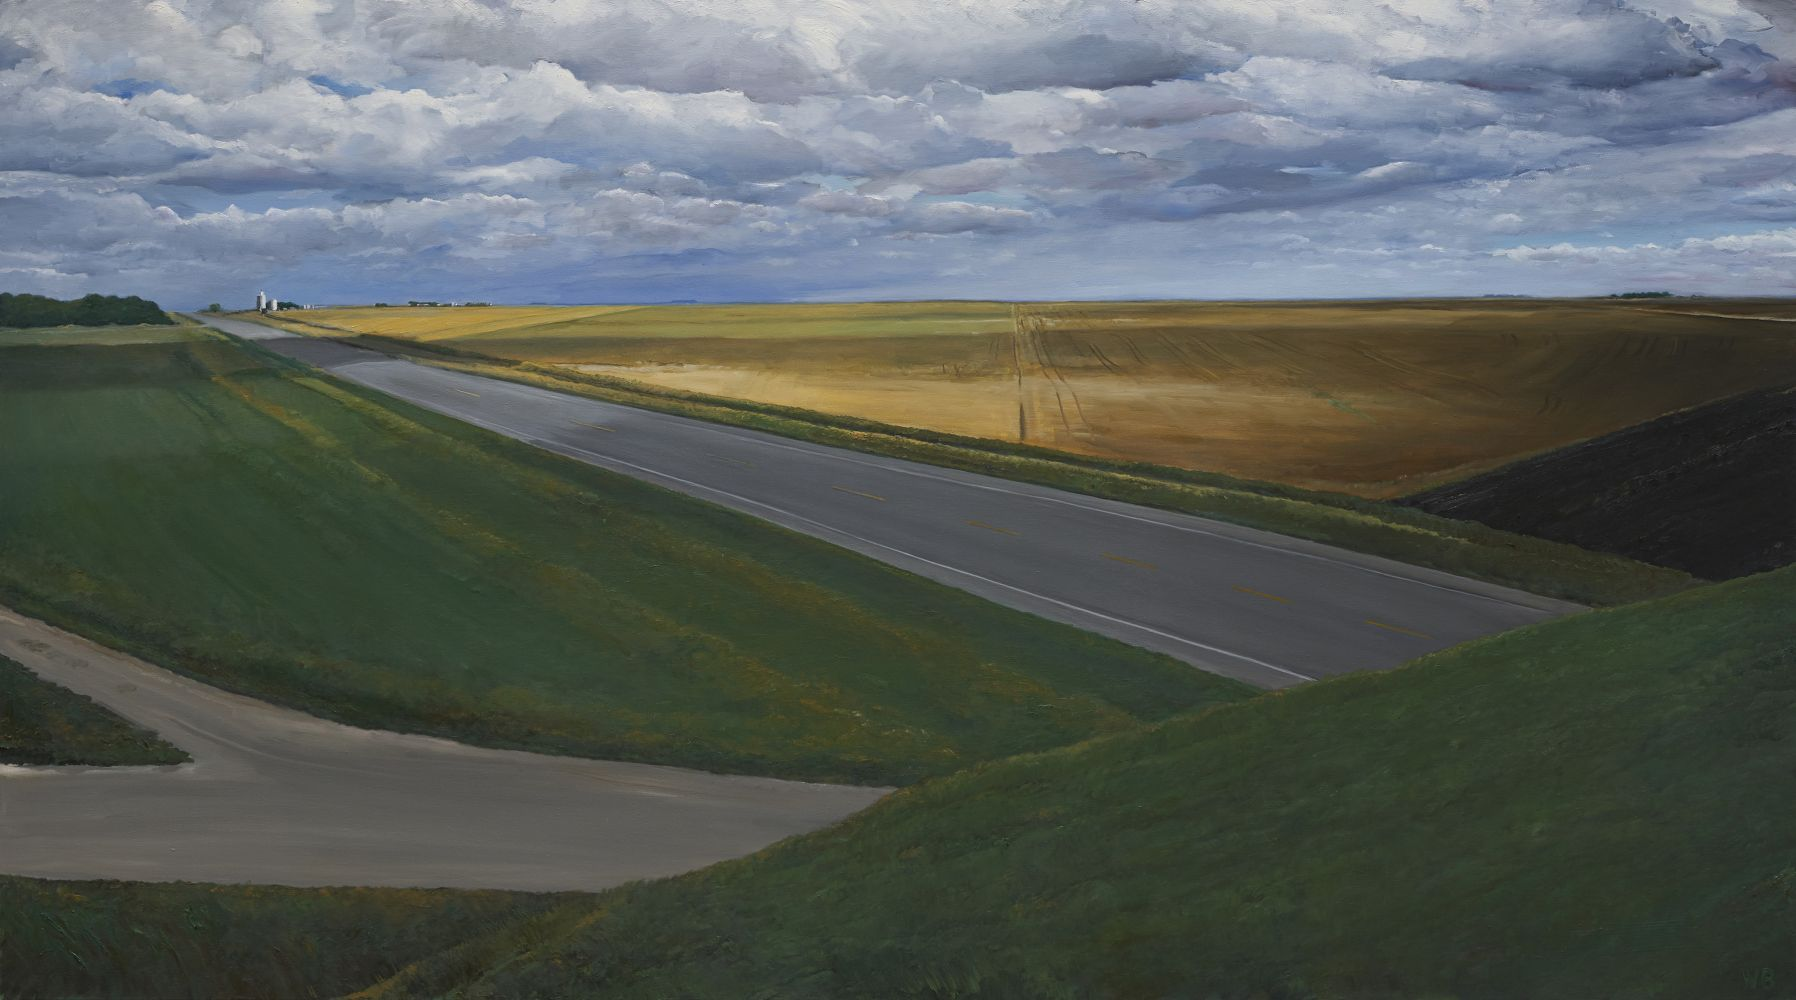 William Beckman Montana, 2020 oil on canvas 58 x 104 inches